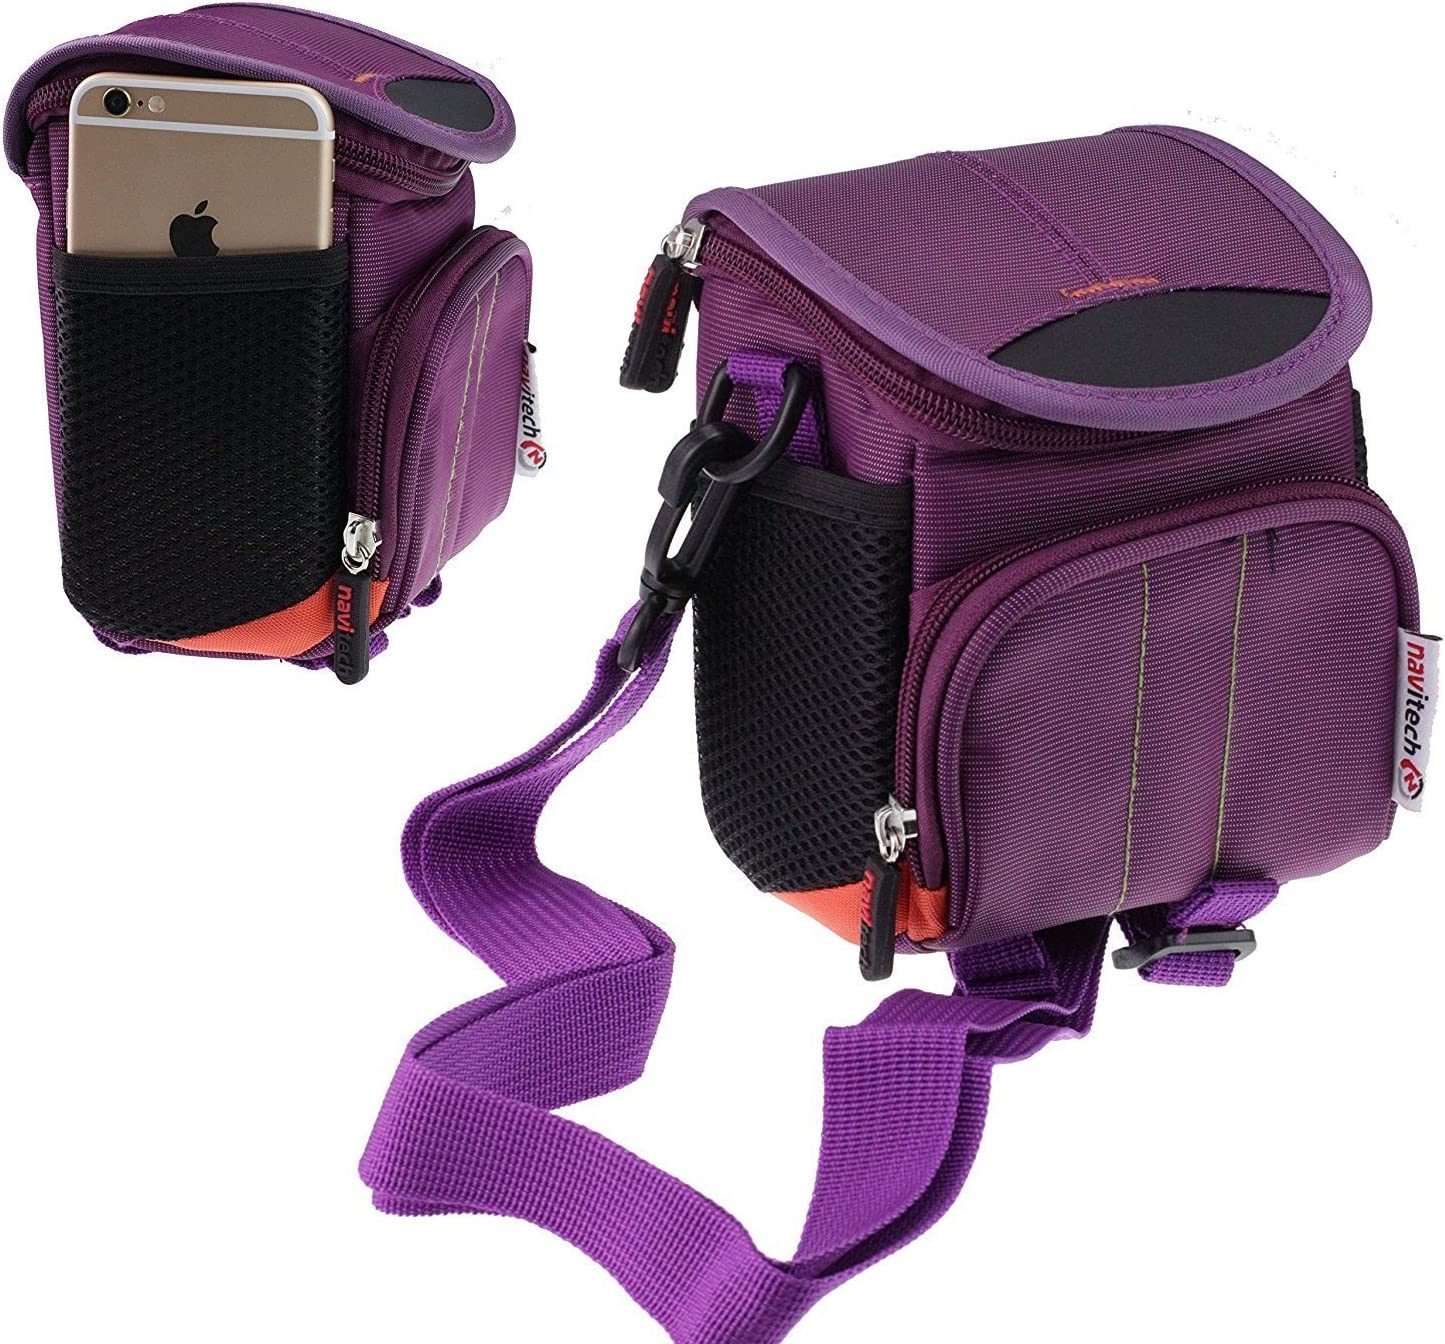 Navitech Purple Digital Camera Case Bag Cover Compatible with TheKINGEAR KG001 2.7 Inch TFT 5X Optical Zoom 15MP 1280 X 960 HD Anti-Shake Smile Capture Digital Video Camera